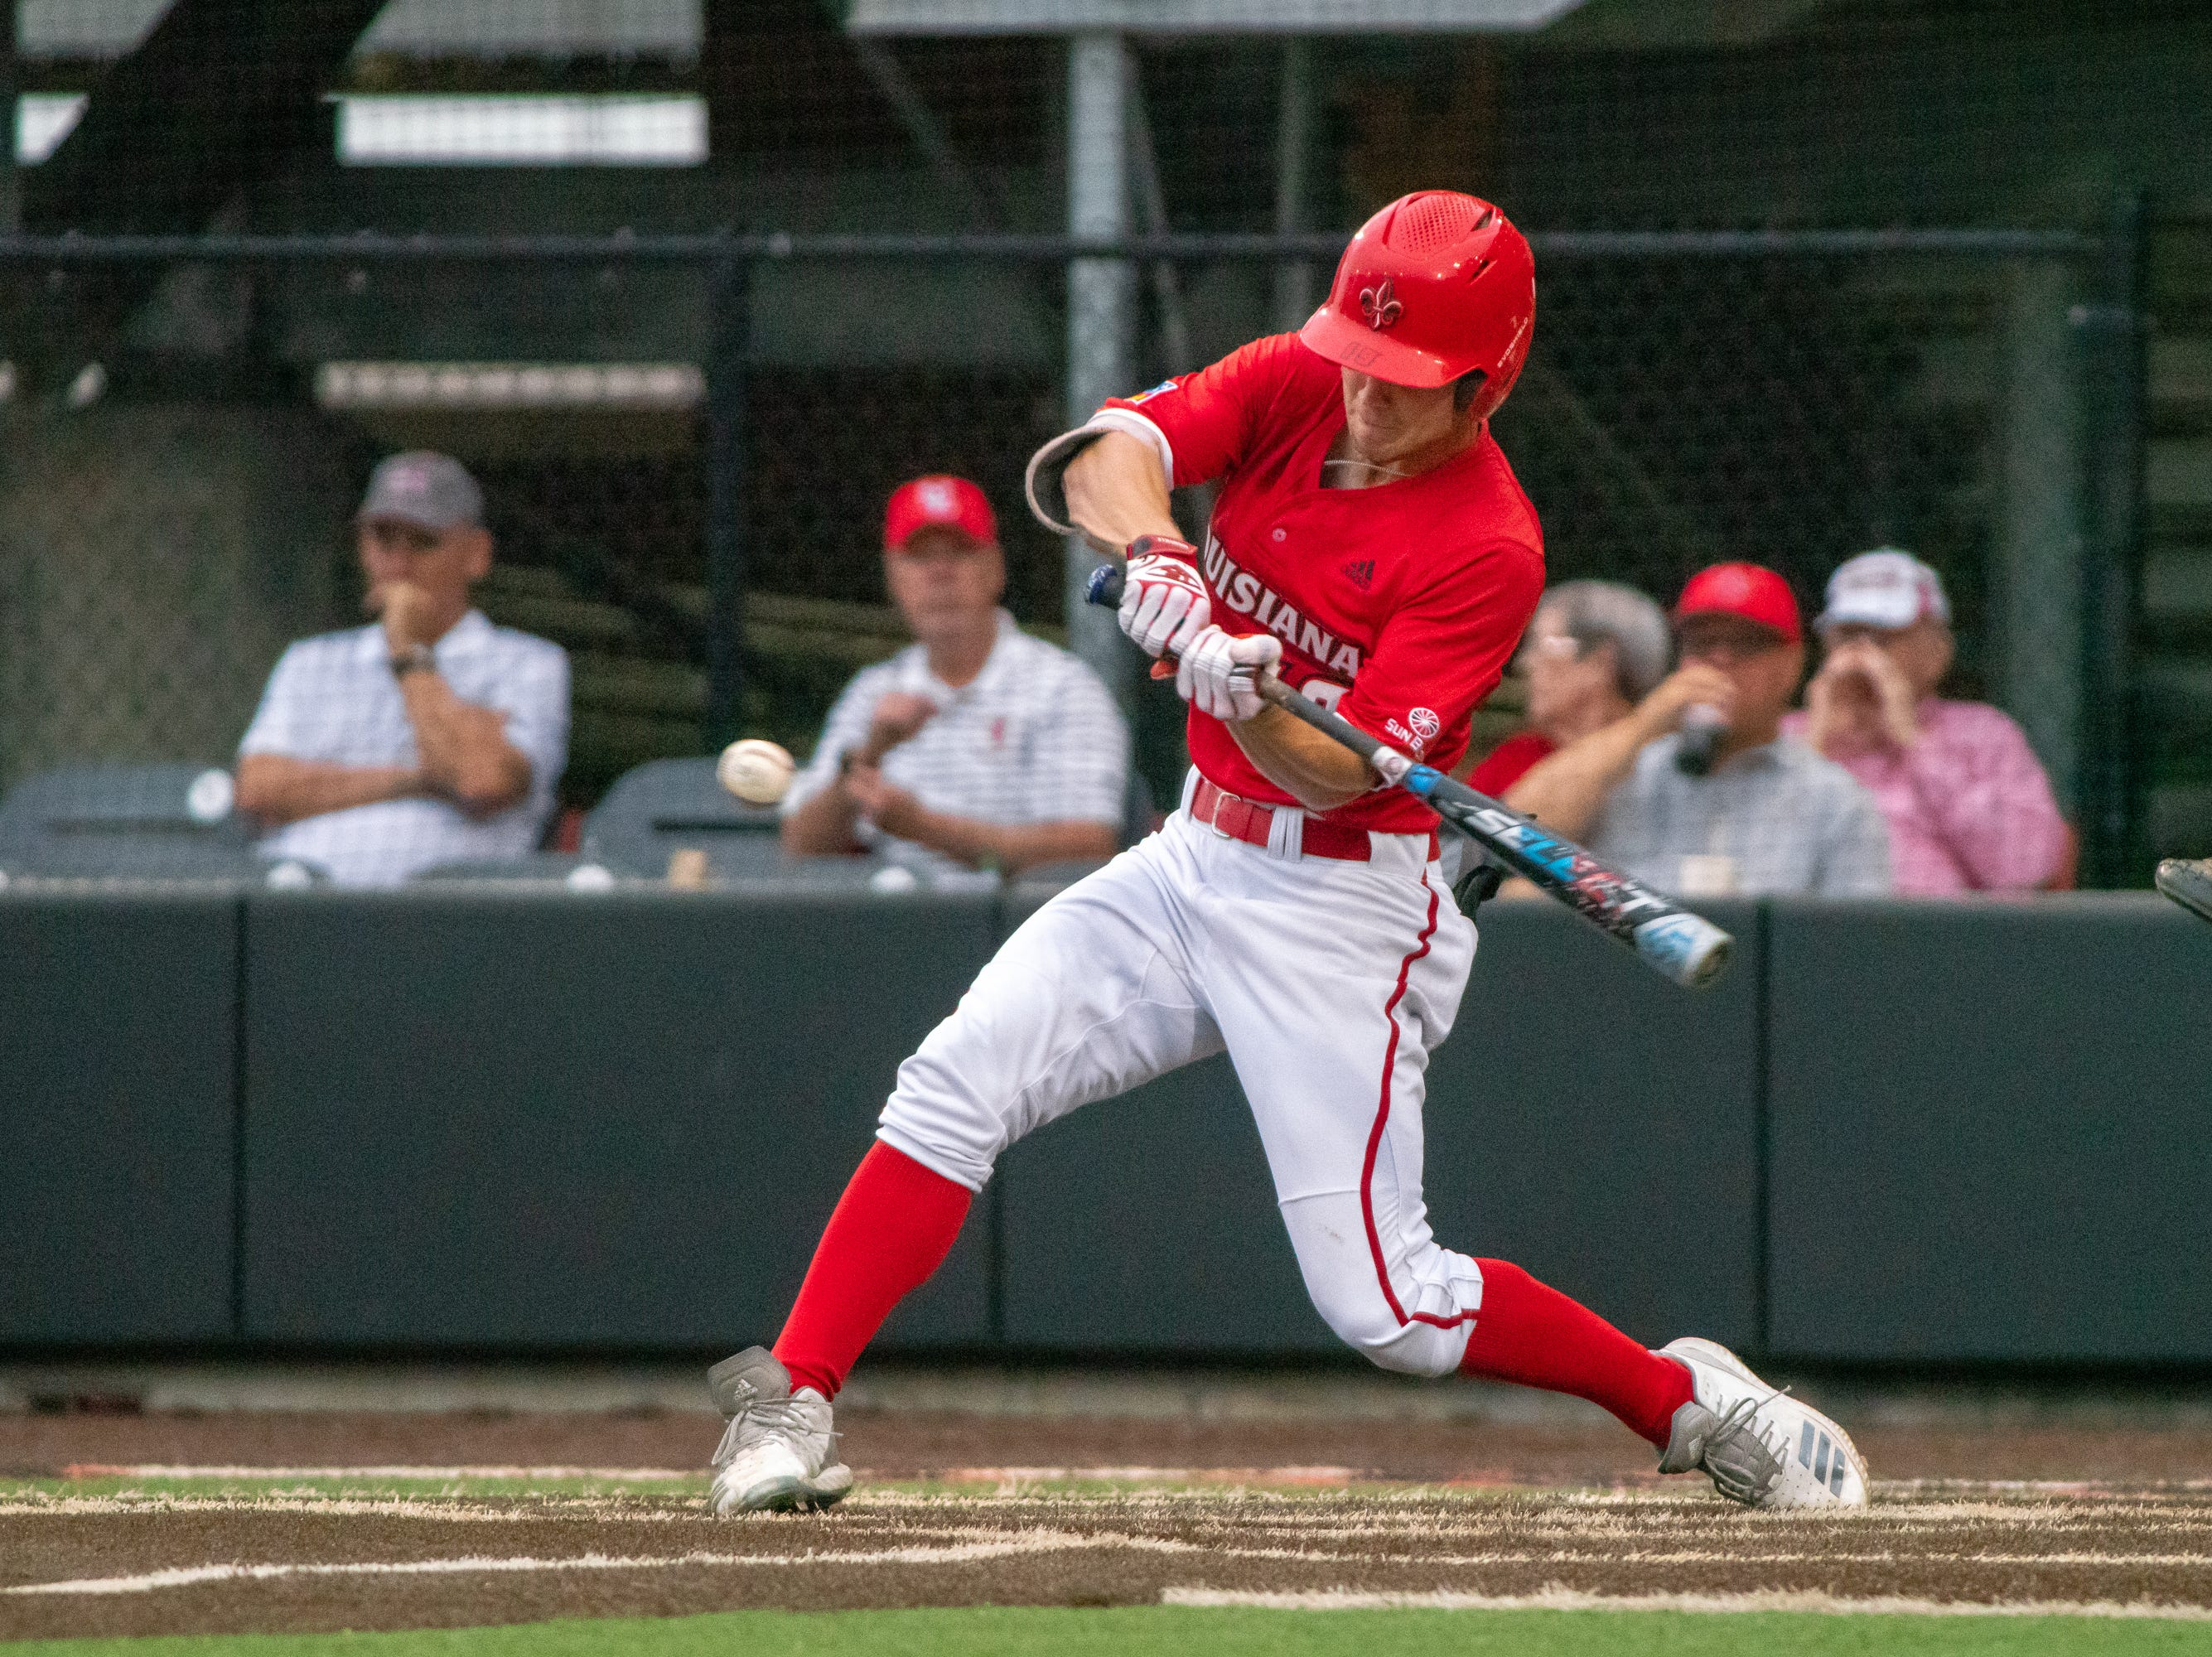 """UL's Hunter Kasuls swings at the incoming pitch as the Ragin' Cajuns take on the South Alabama Jaguars at M.L. """"Tigue"""" Moore Field on Friday, April 4, 2019."""